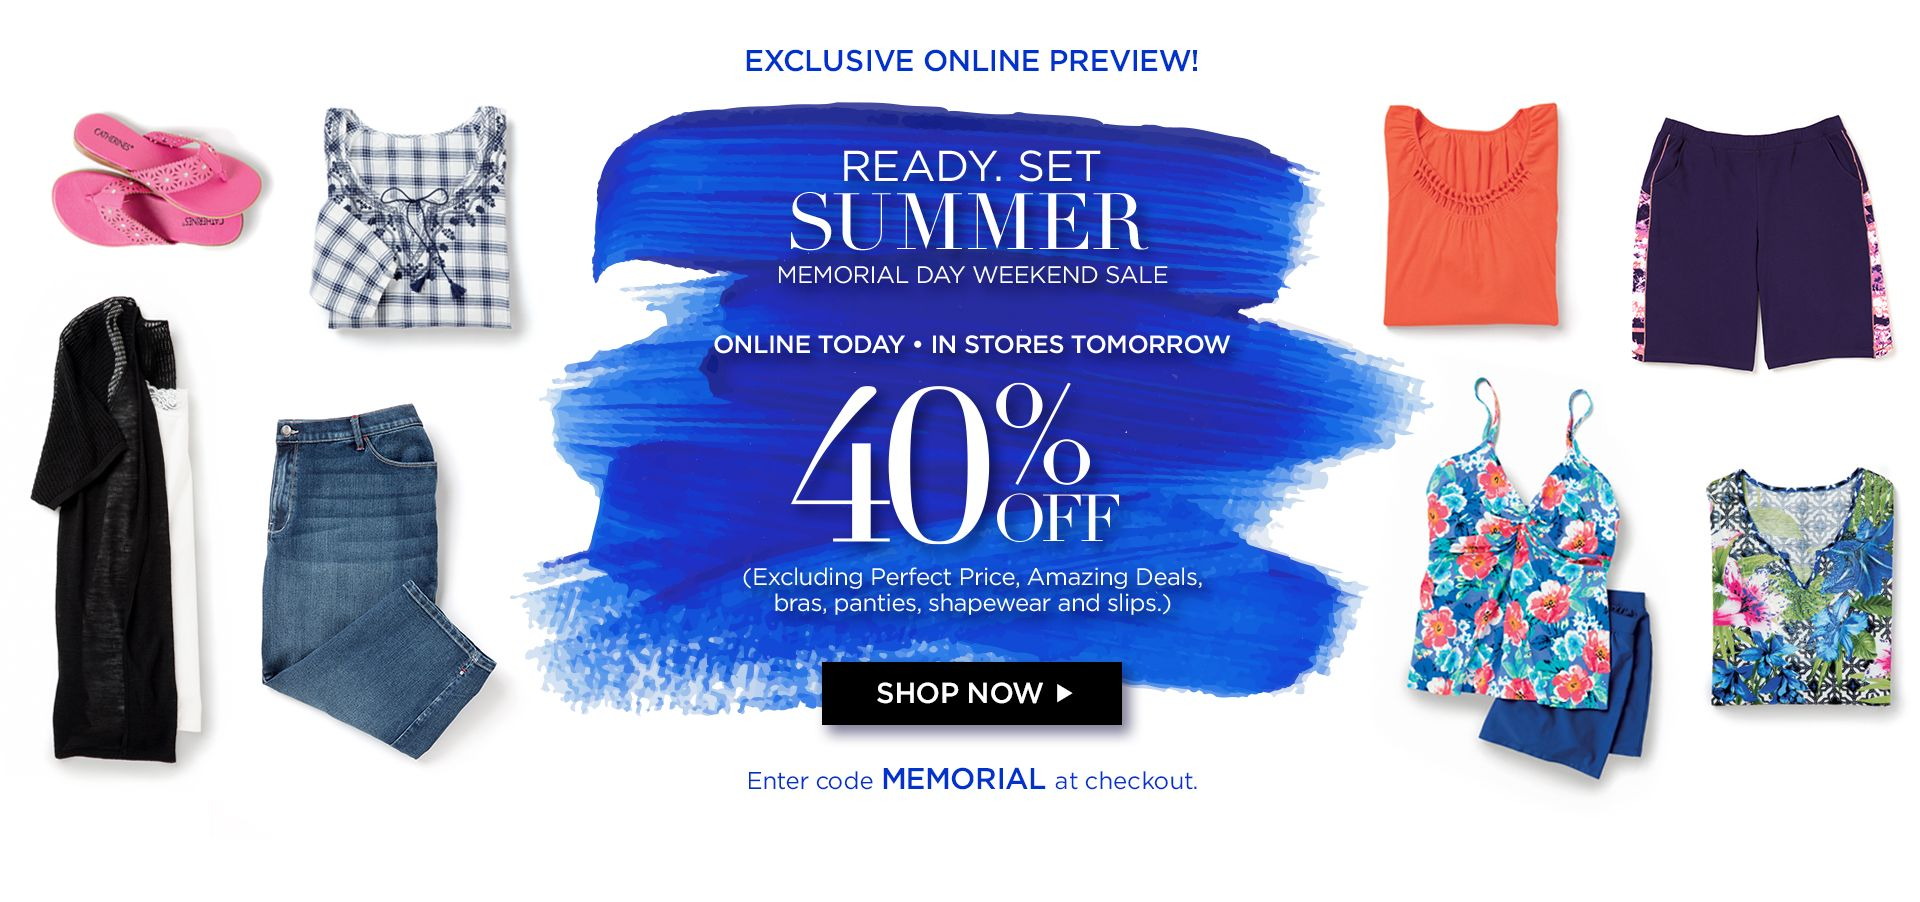 Shop 40% off at Catherines Plus Sizes online today only, in stores tomorrow